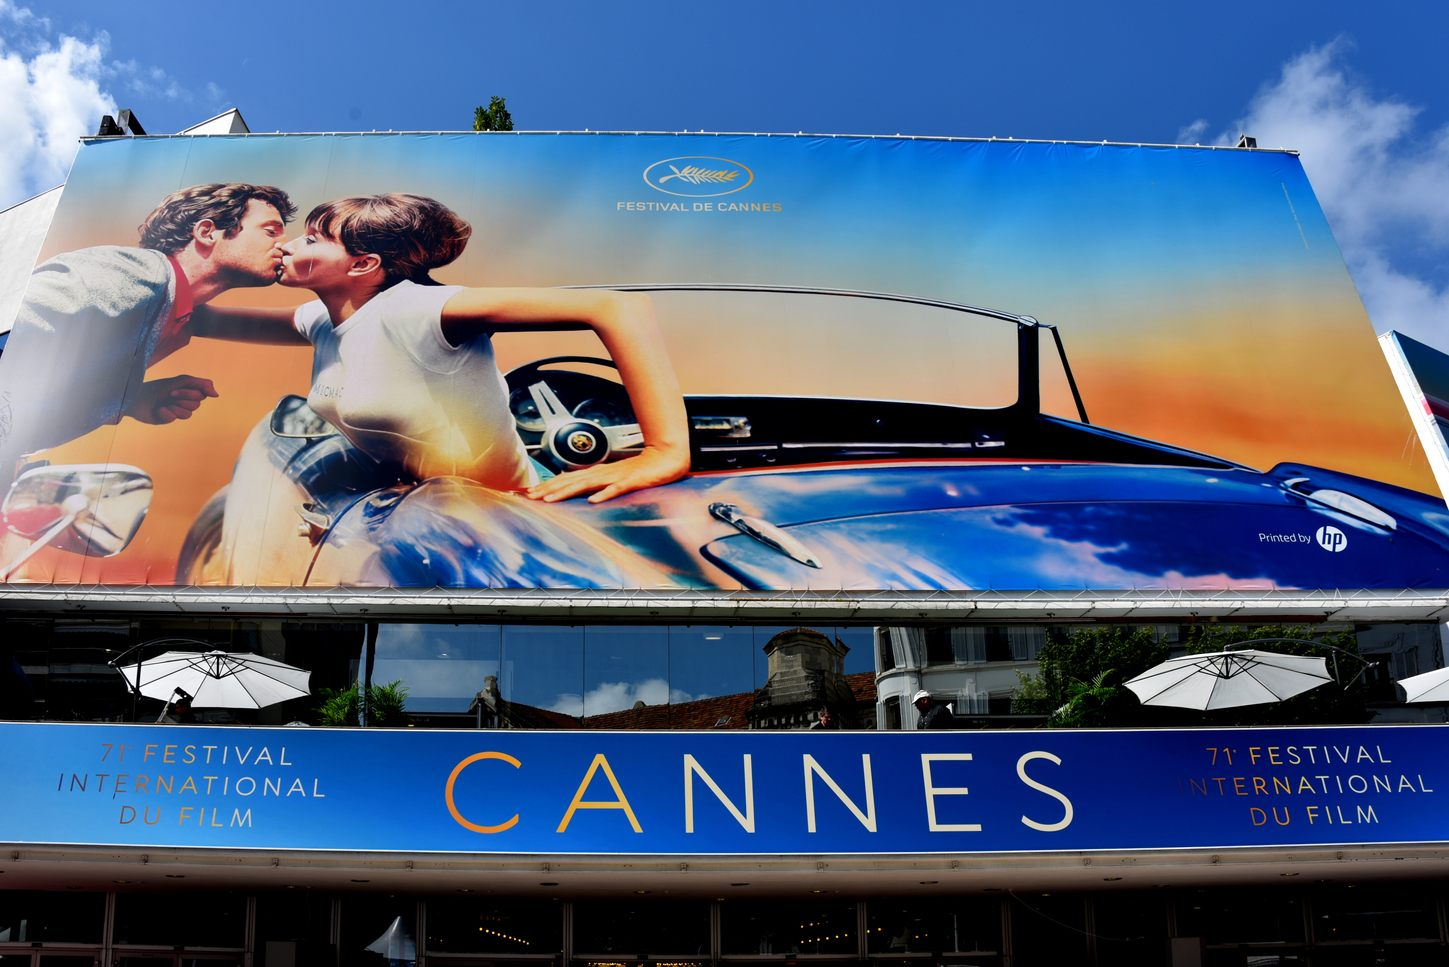 poster for the Cannes Film Festival 2018 above the entrance to the Palais des Festivals